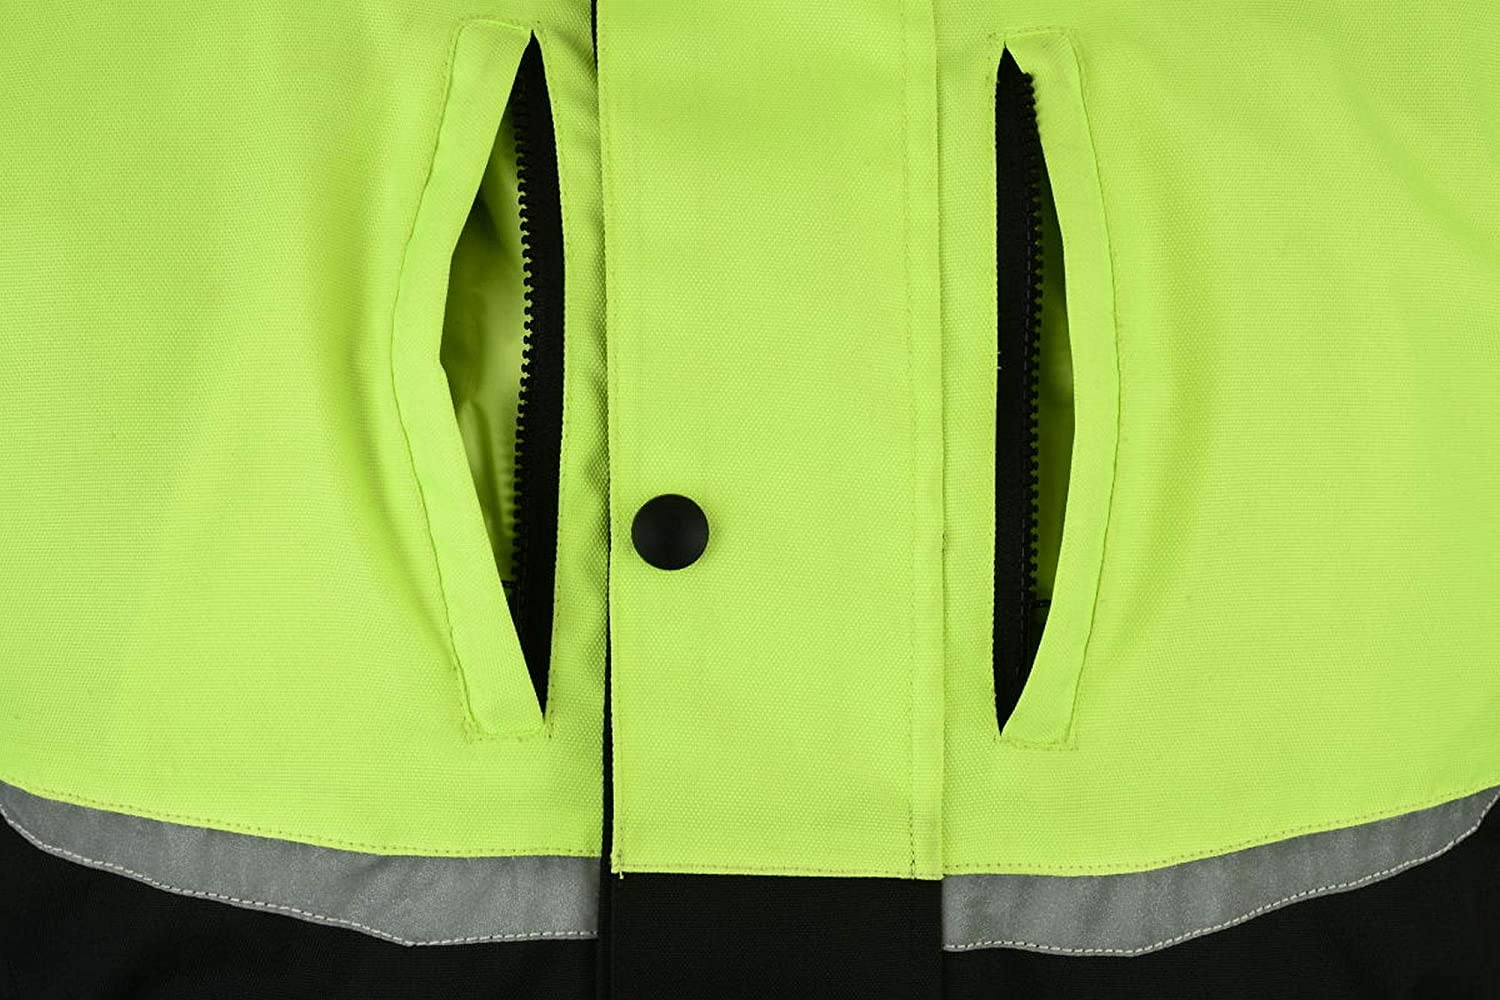 Texpeed Black /& Hi-Vis Short Length Armoured Motorcycle Jacket Sizes M-12XL